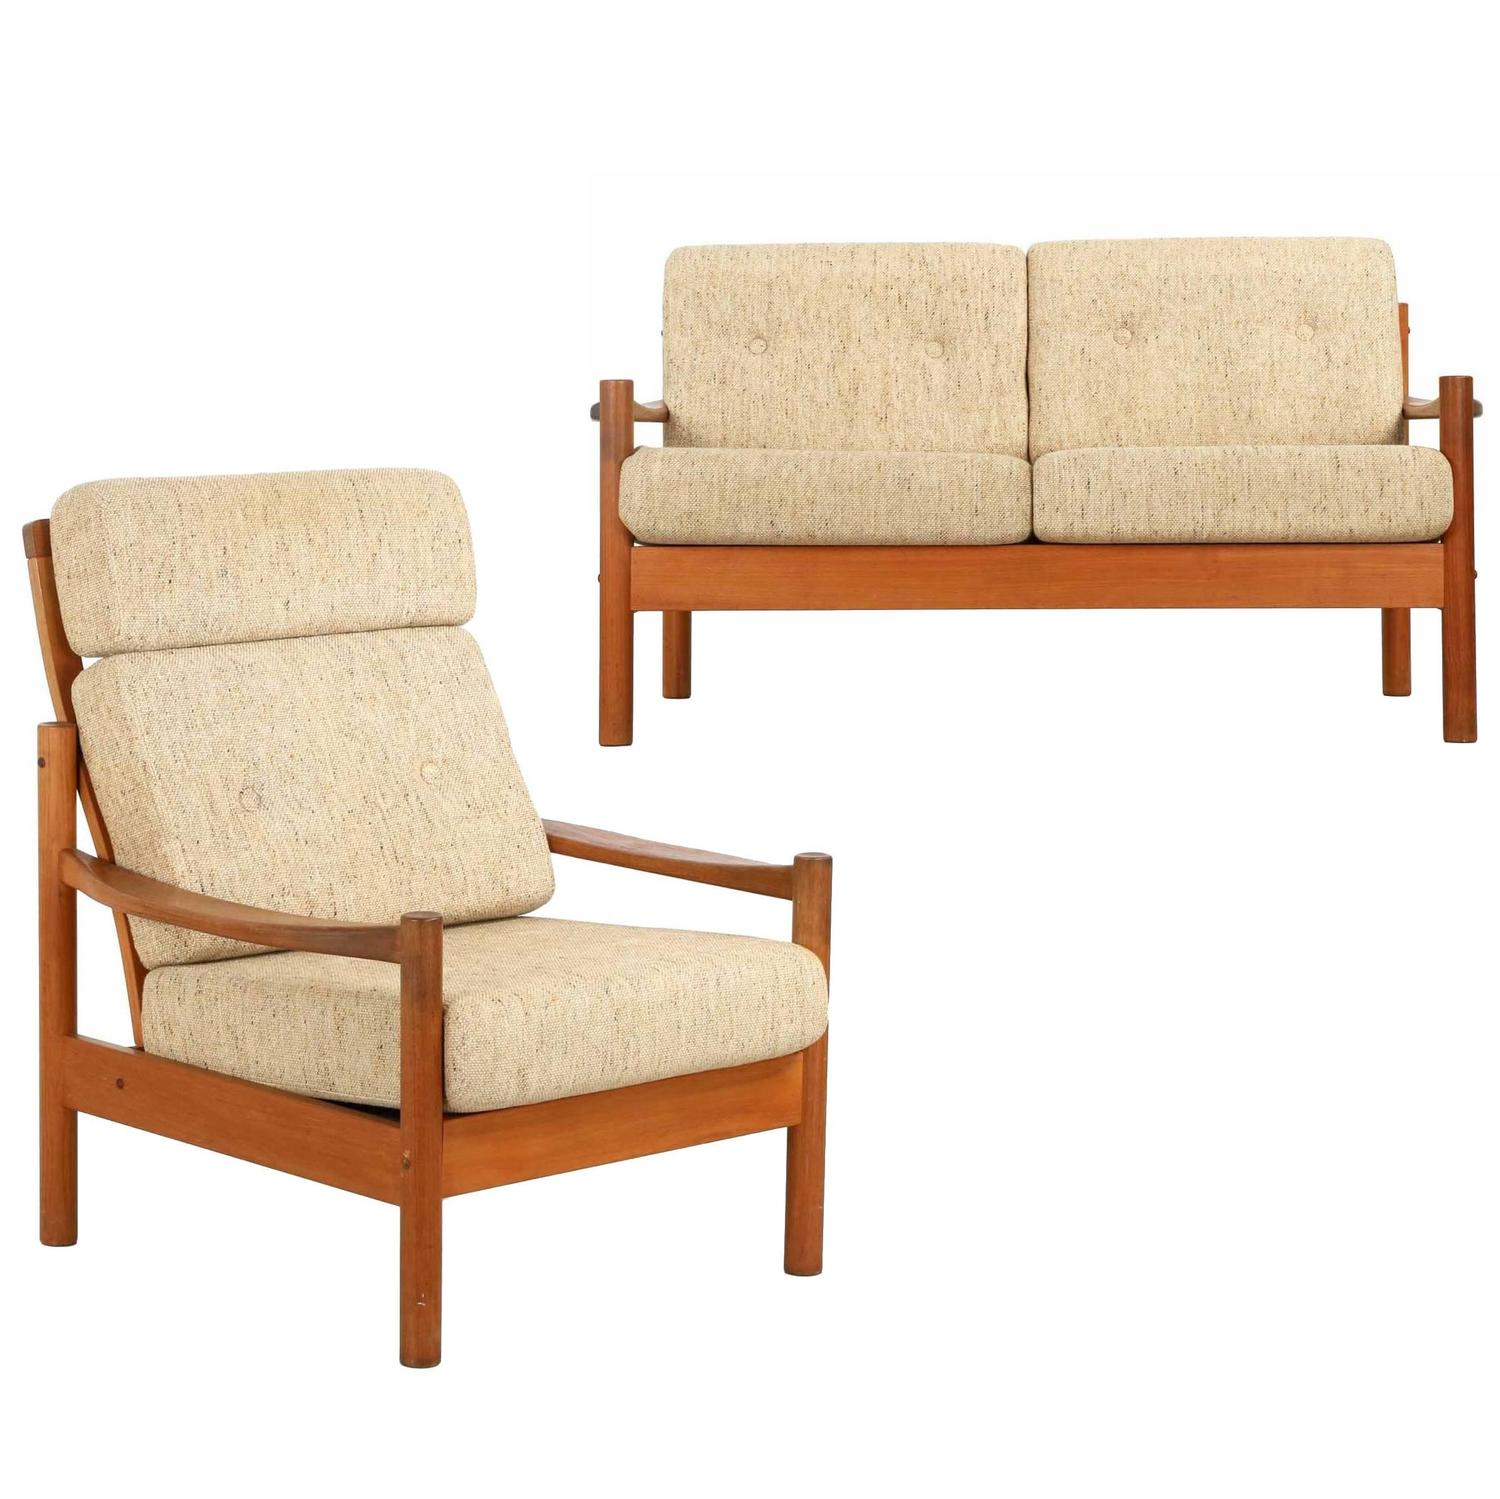 Danish Mid Century Sculpted Teak Lounge Chair and Sofa by Tarm